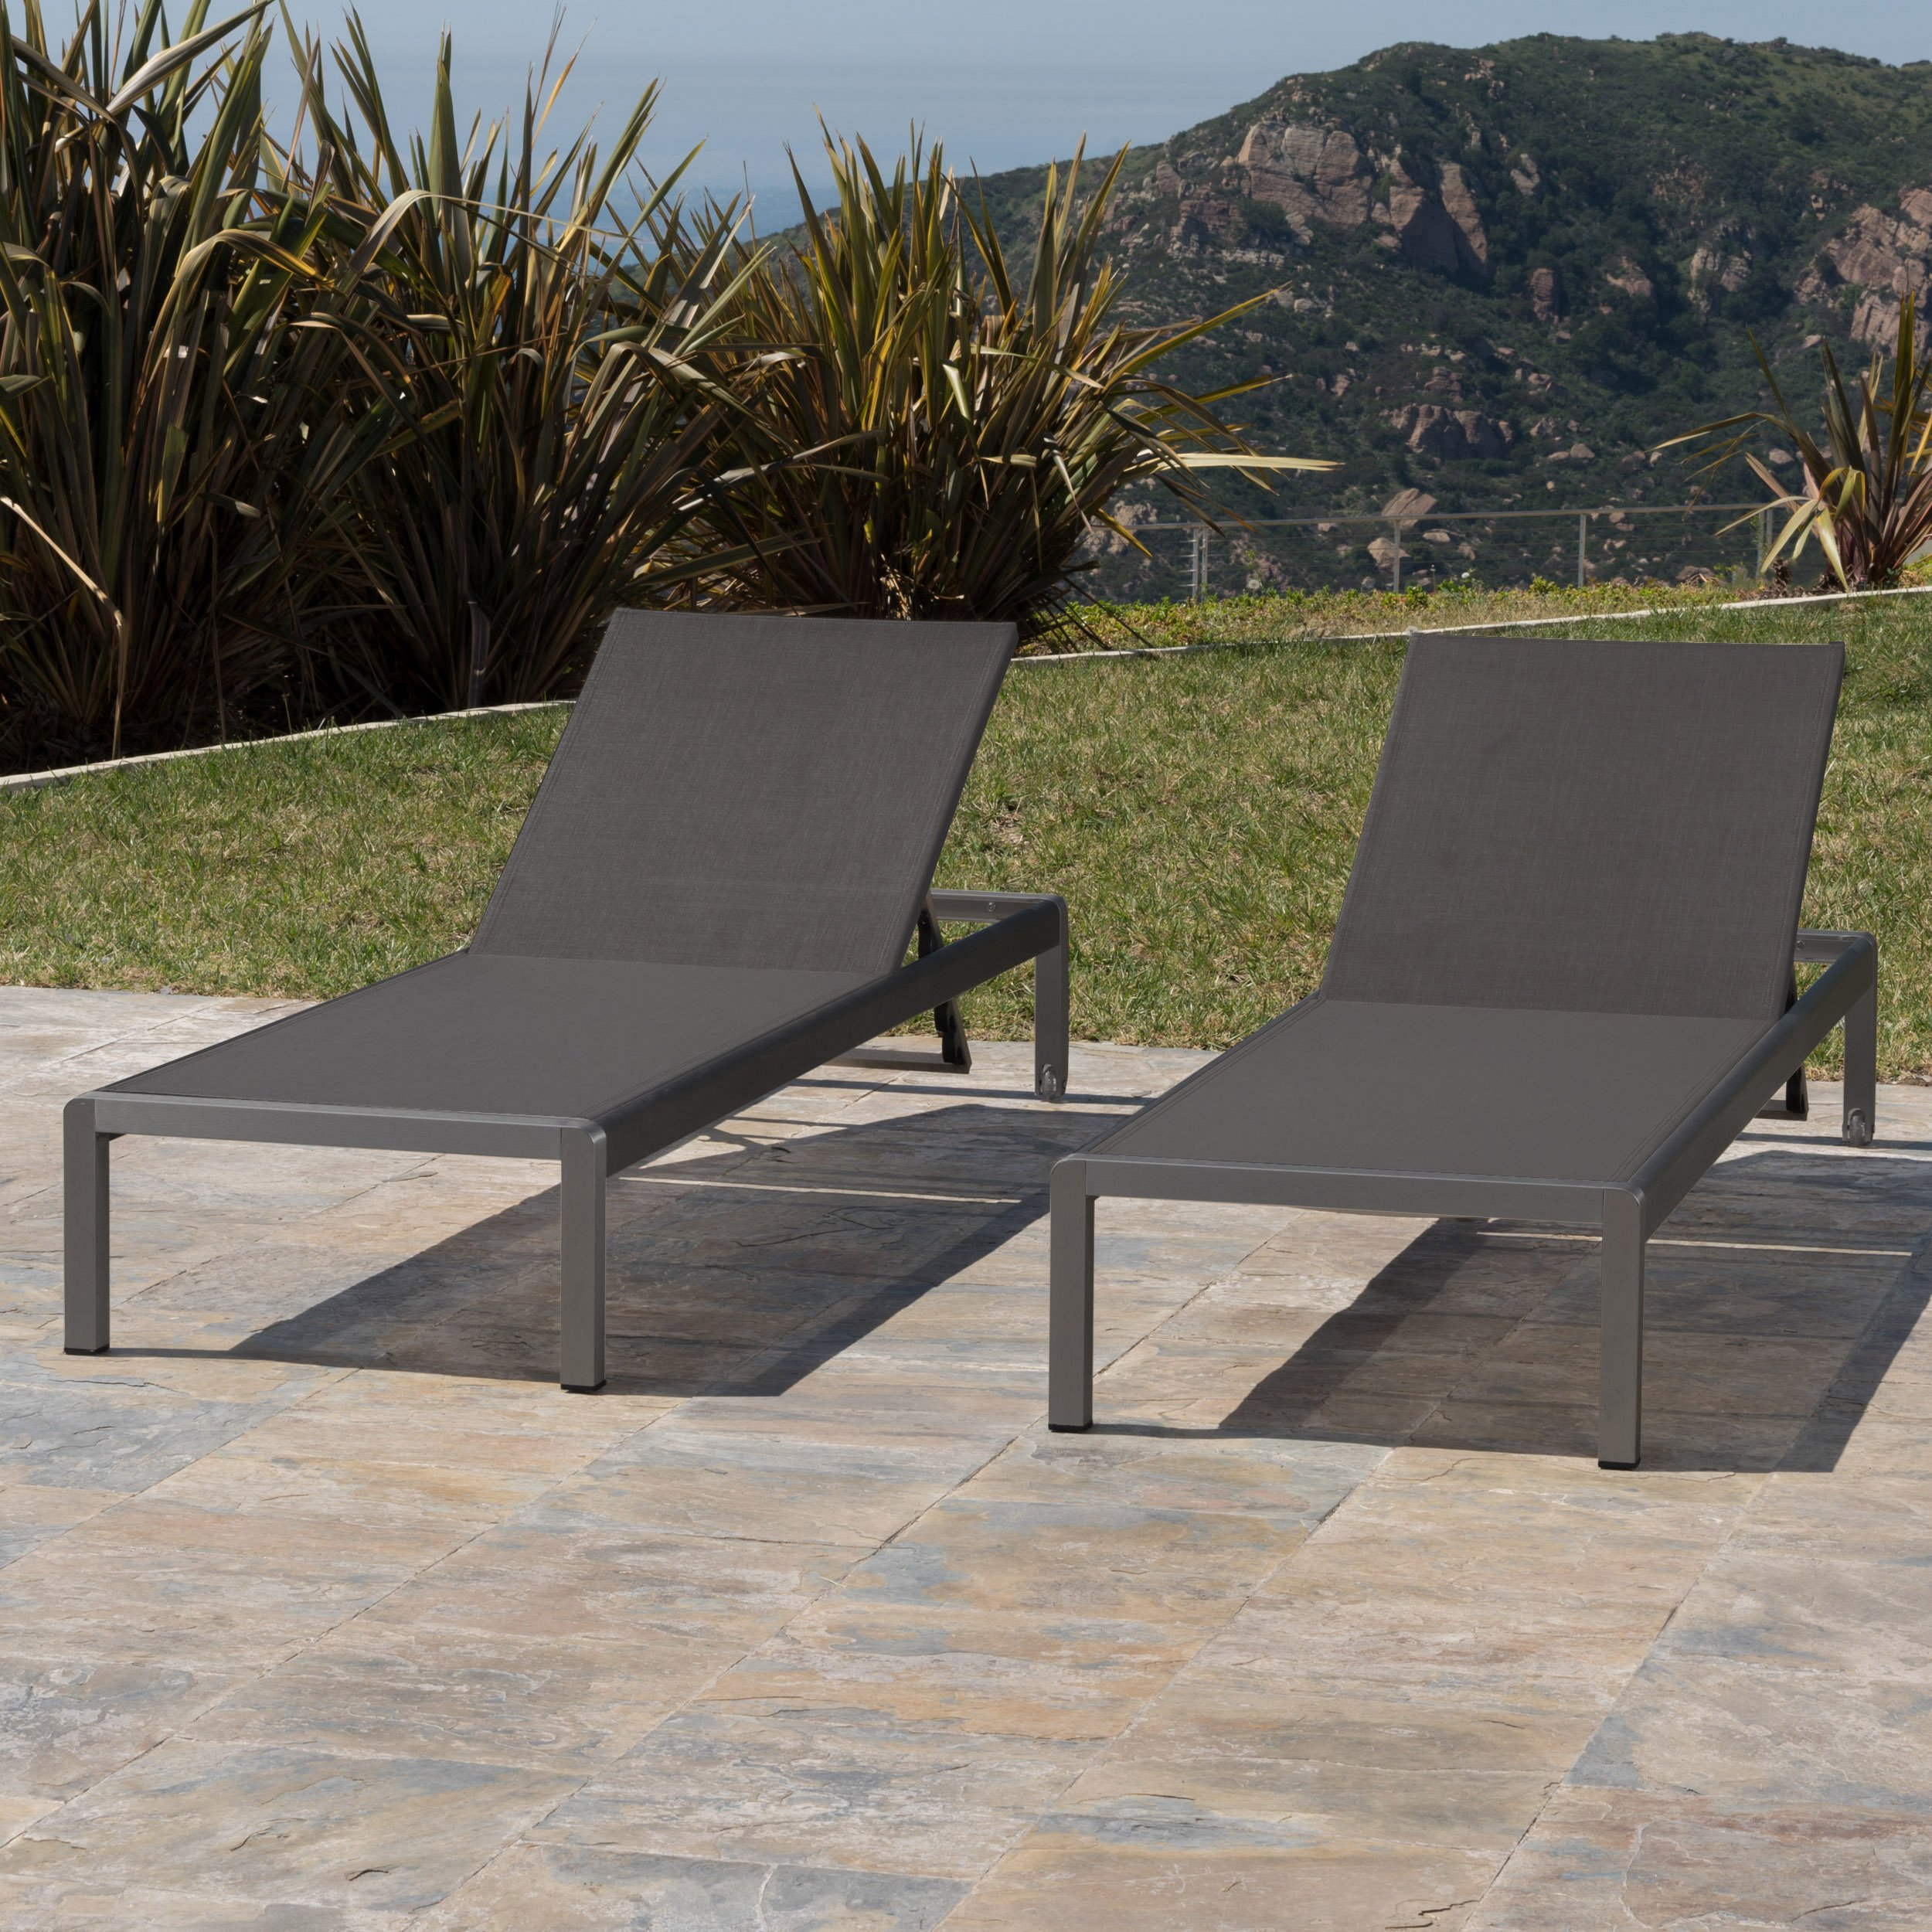 Crested bay patio furniture outdoor grey aluminum chaise lounge with dark grey mesh seat set of 2